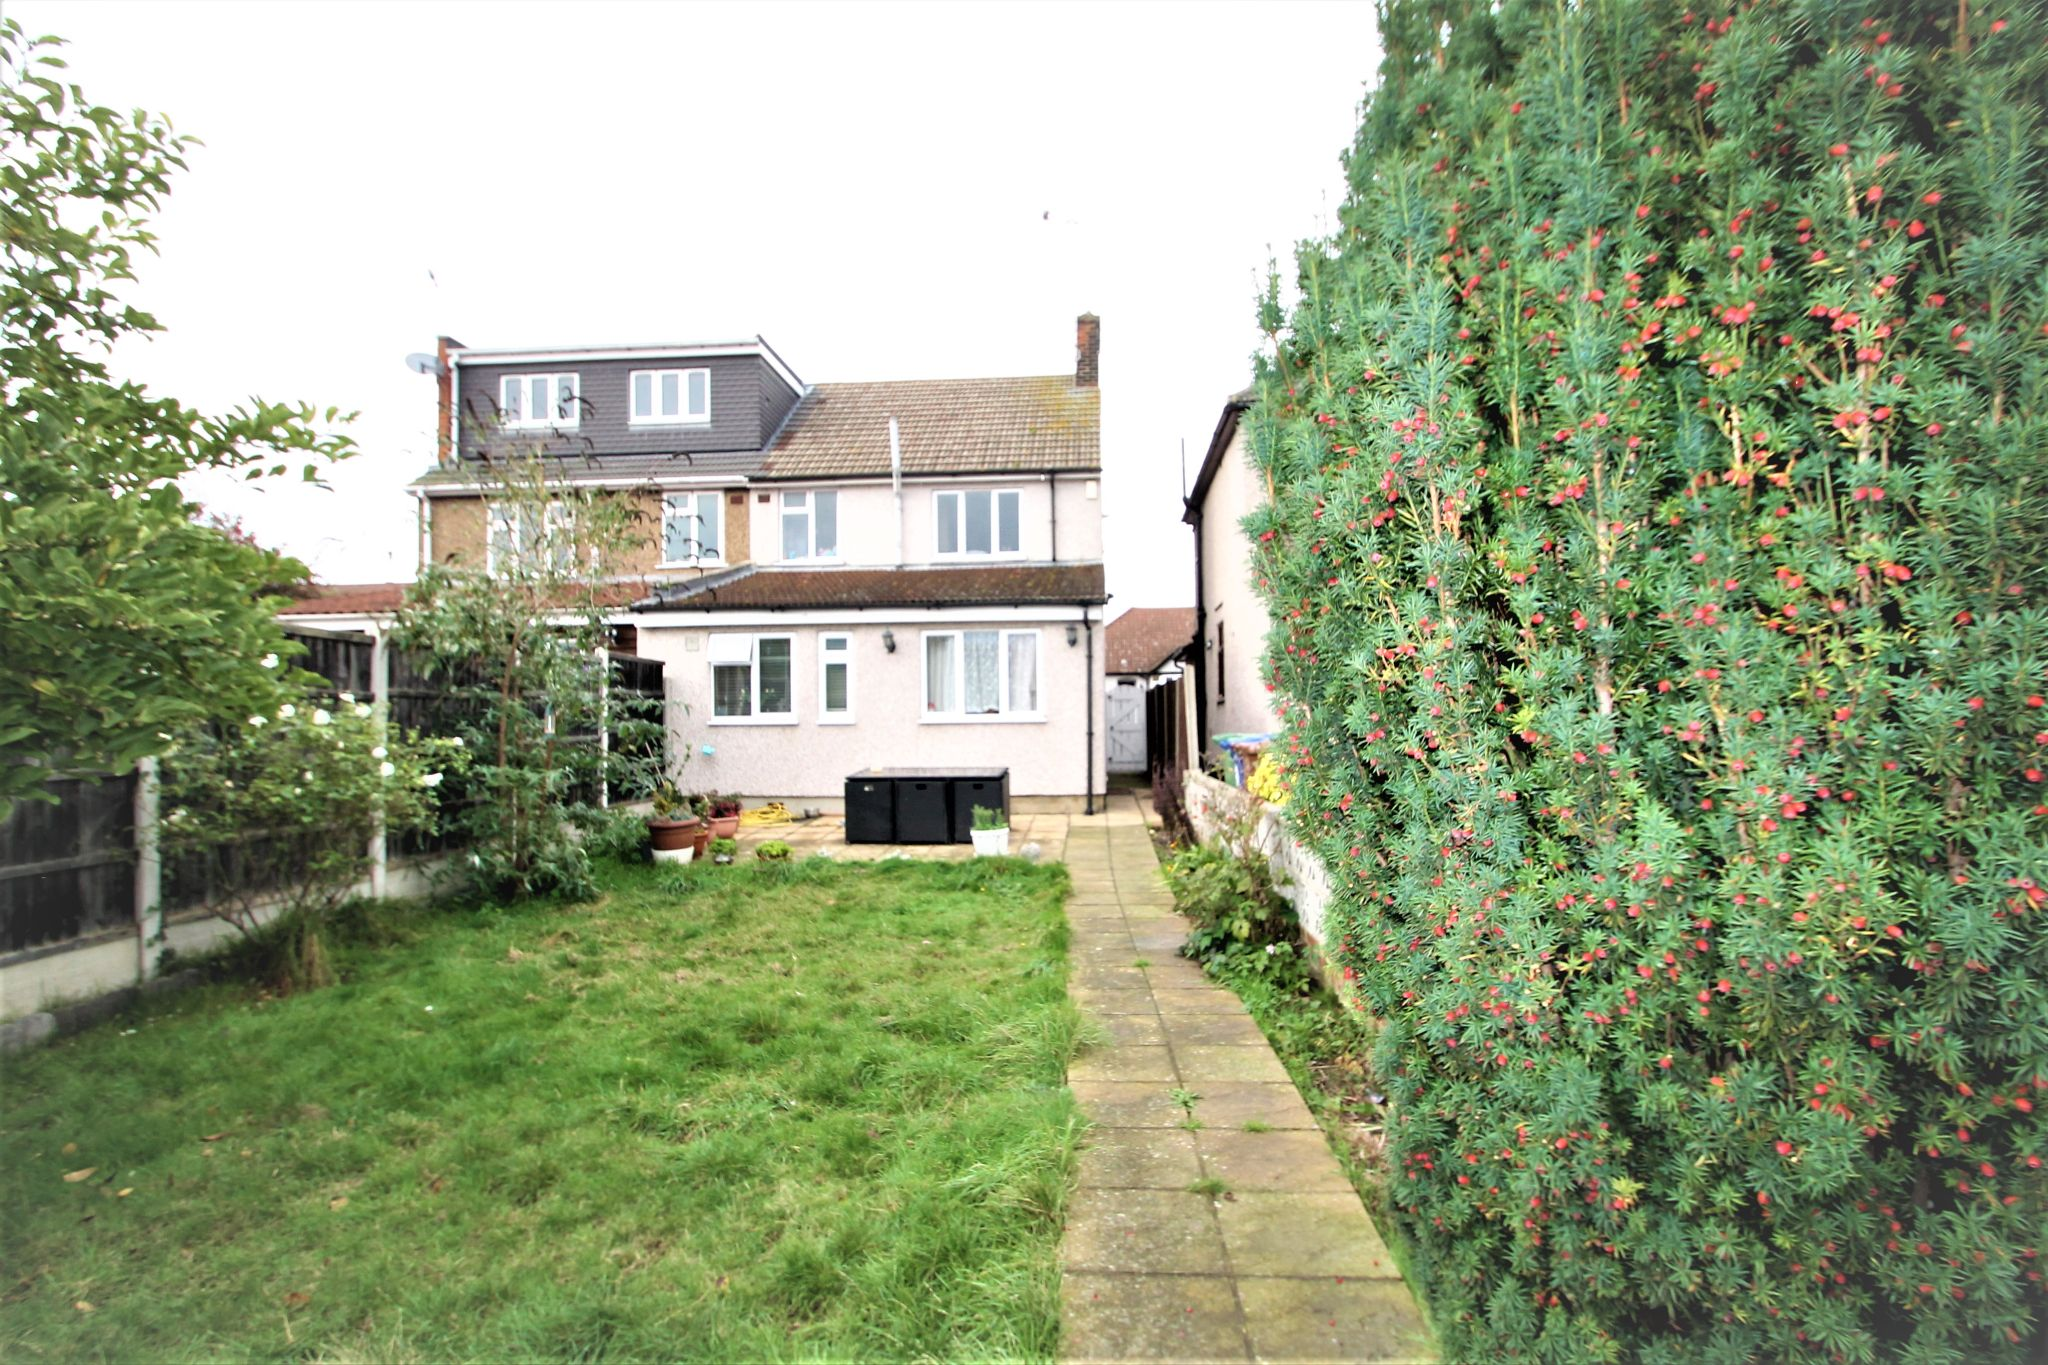 3 Bedroom Semi-detached House For Sale - Back Garden